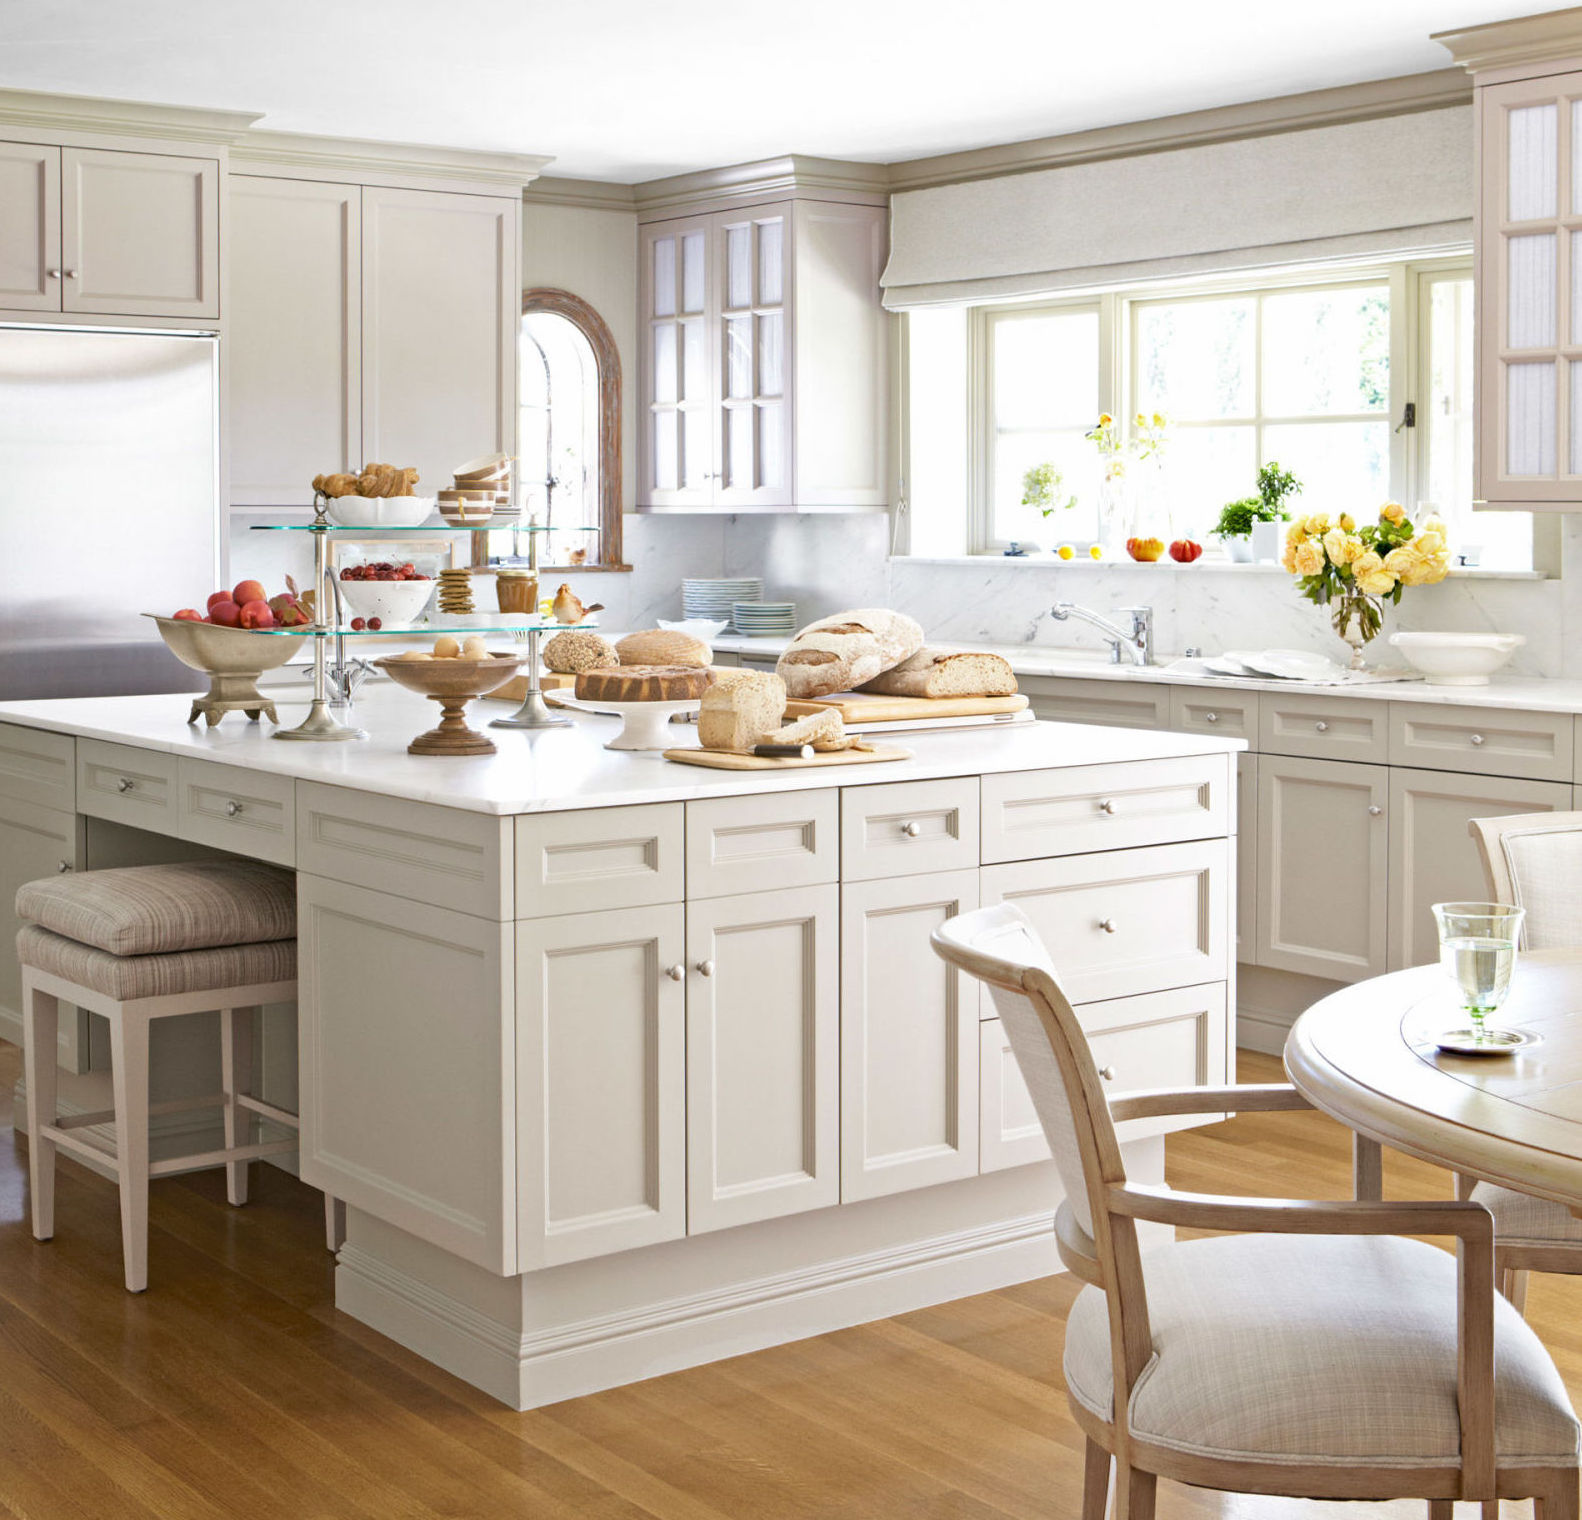 Serene And Inviting Pale Neutral Kitchens Take Steps Beyond White In A Few Subtle Ways